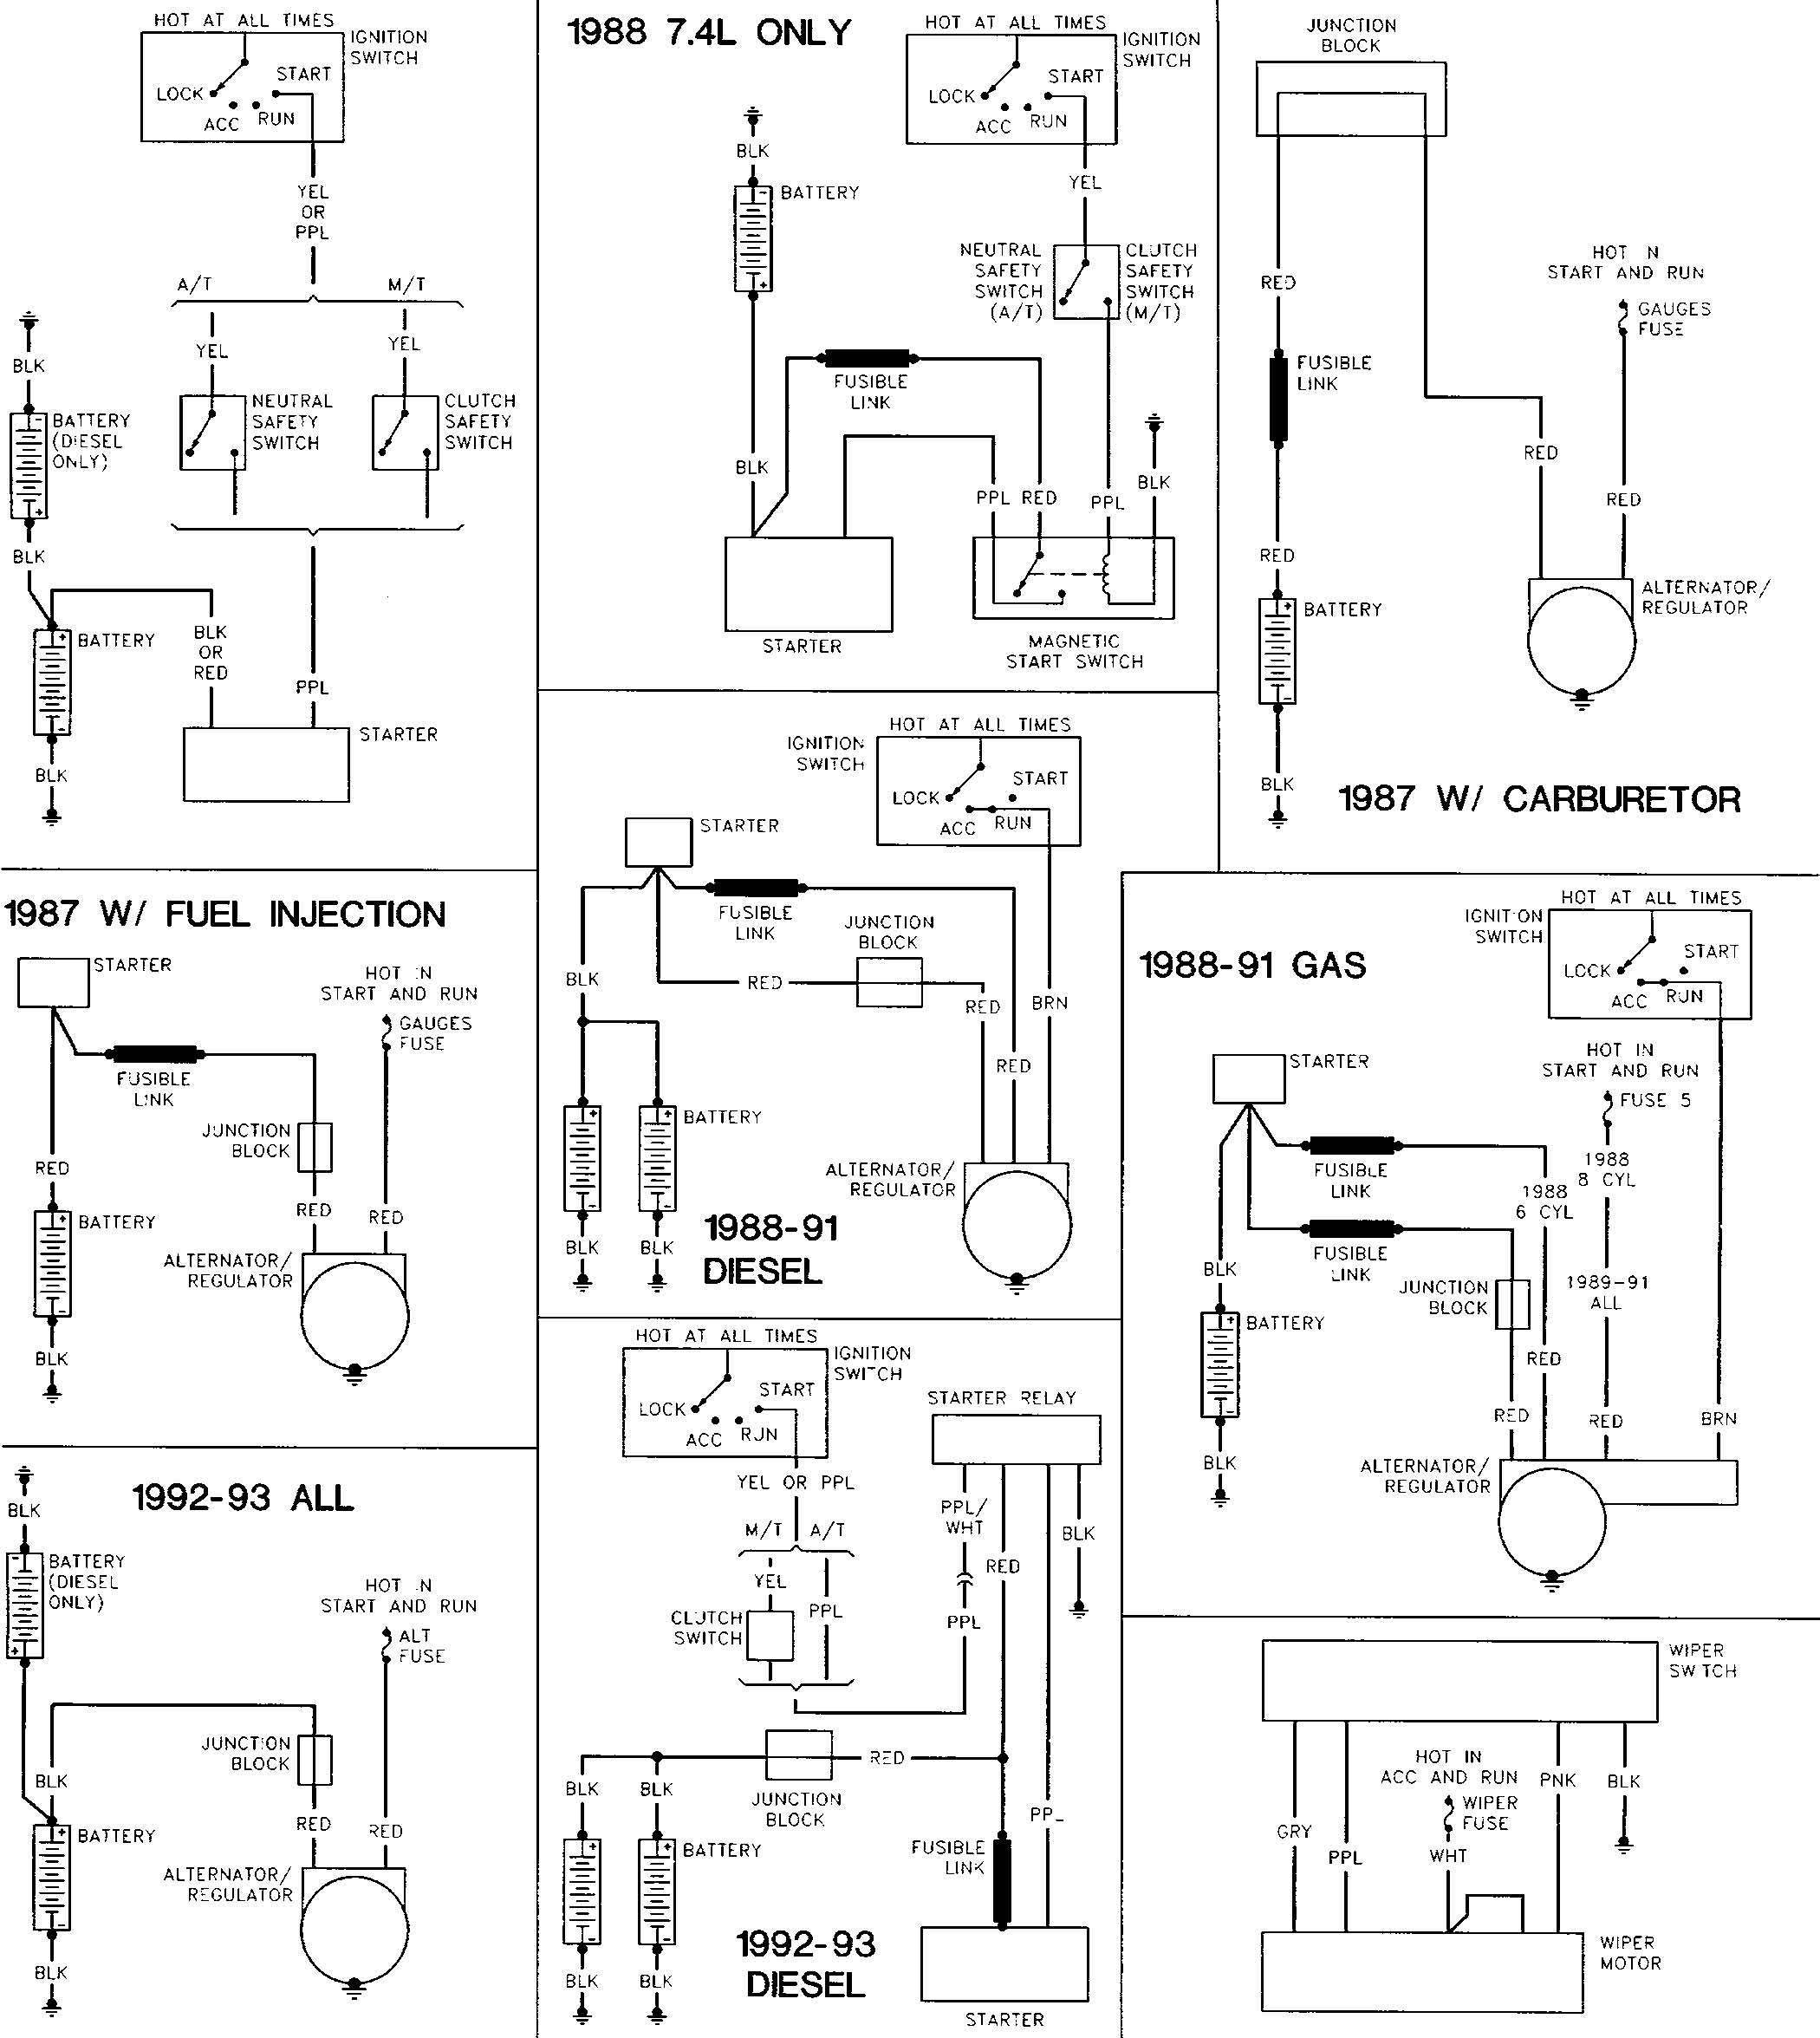 Monaco Wiring Diagrams | Wiring Diagram on kubota b5100 tractor, kubota b7300 tractor, kubota bx1850 tractor, kubota l4400 tractor, kubota b2700 tractor, kubota l2350 tractor, kubota b7800 tractor, kubota mx5100 tractor, kubota b7510 tractor, kubota b2400 tractor, kubota b1550 tractor, kubota b9200 tractor, kubota b3200 tractor, kubota b2920 tractor, kubota bx23 tractor, kubota bx2230 tractor, kubota m7040 tractor, kubota bx2200 tractor, used kubota b7500 tractor, kubota b5200 tractor,